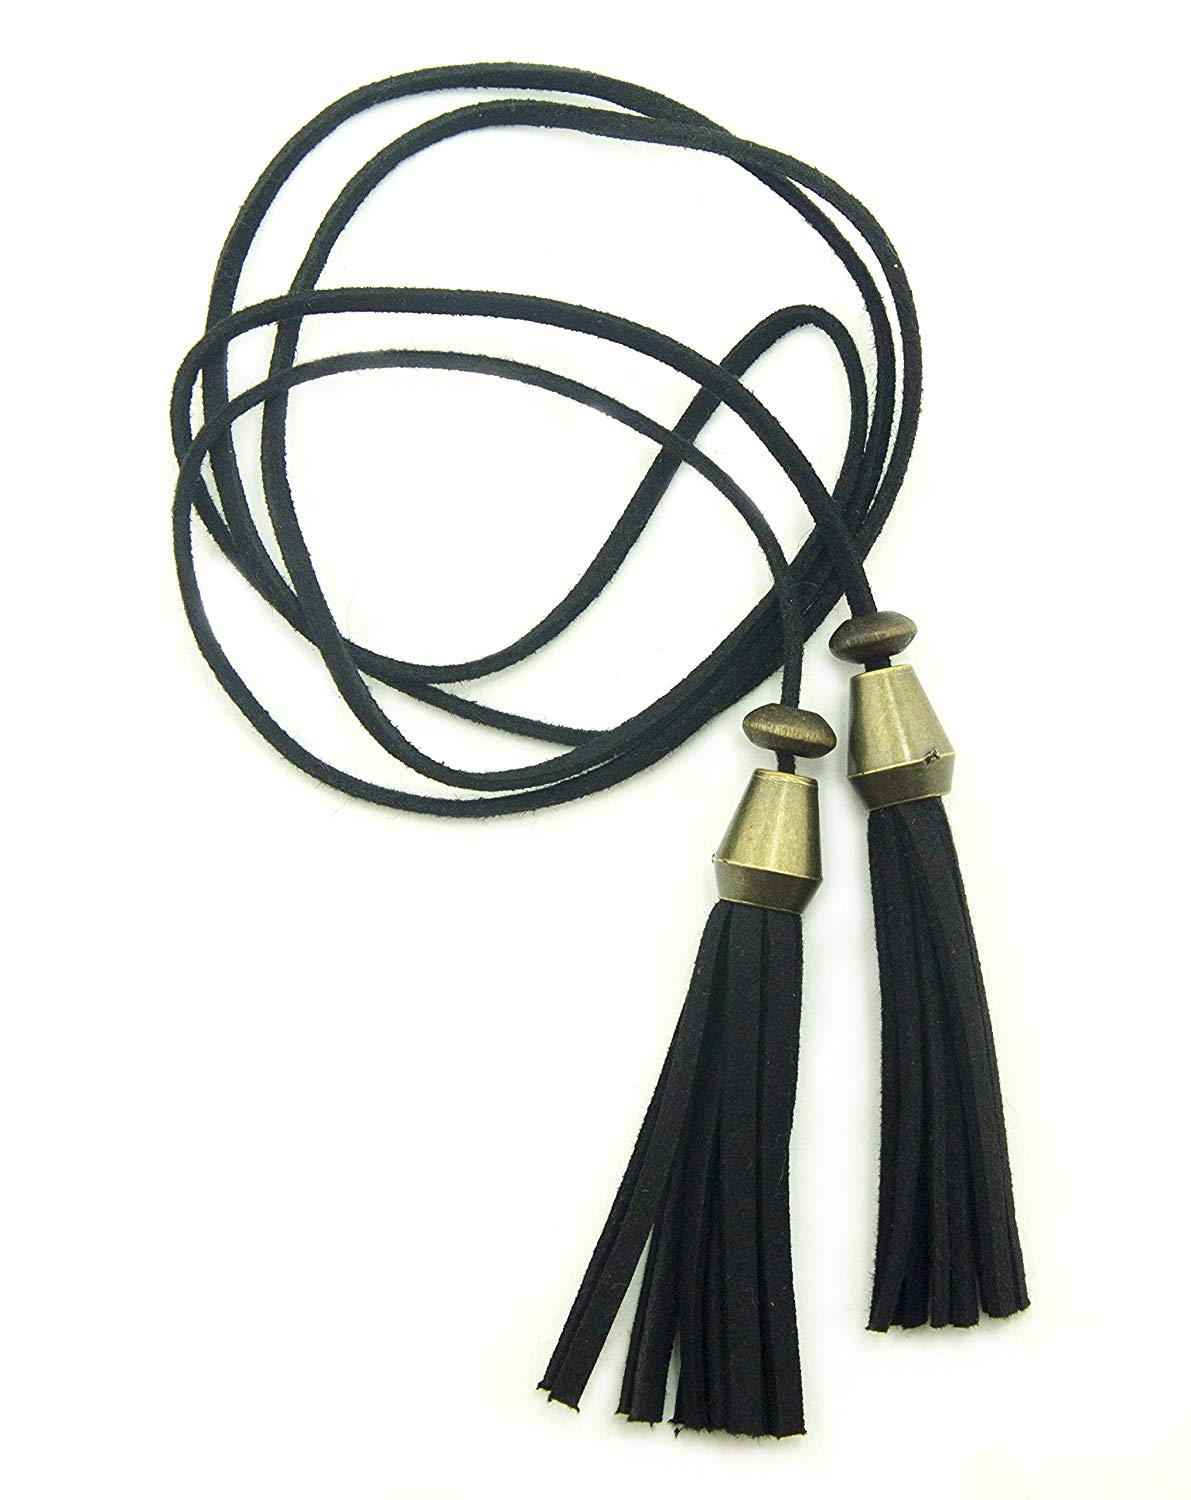 HAND Pretty Black Suede Double Tassel Thong Loop With Vintage Gold Trim for Garment, Hat, Bag and Accessory Decoration - Perfect As Necklace